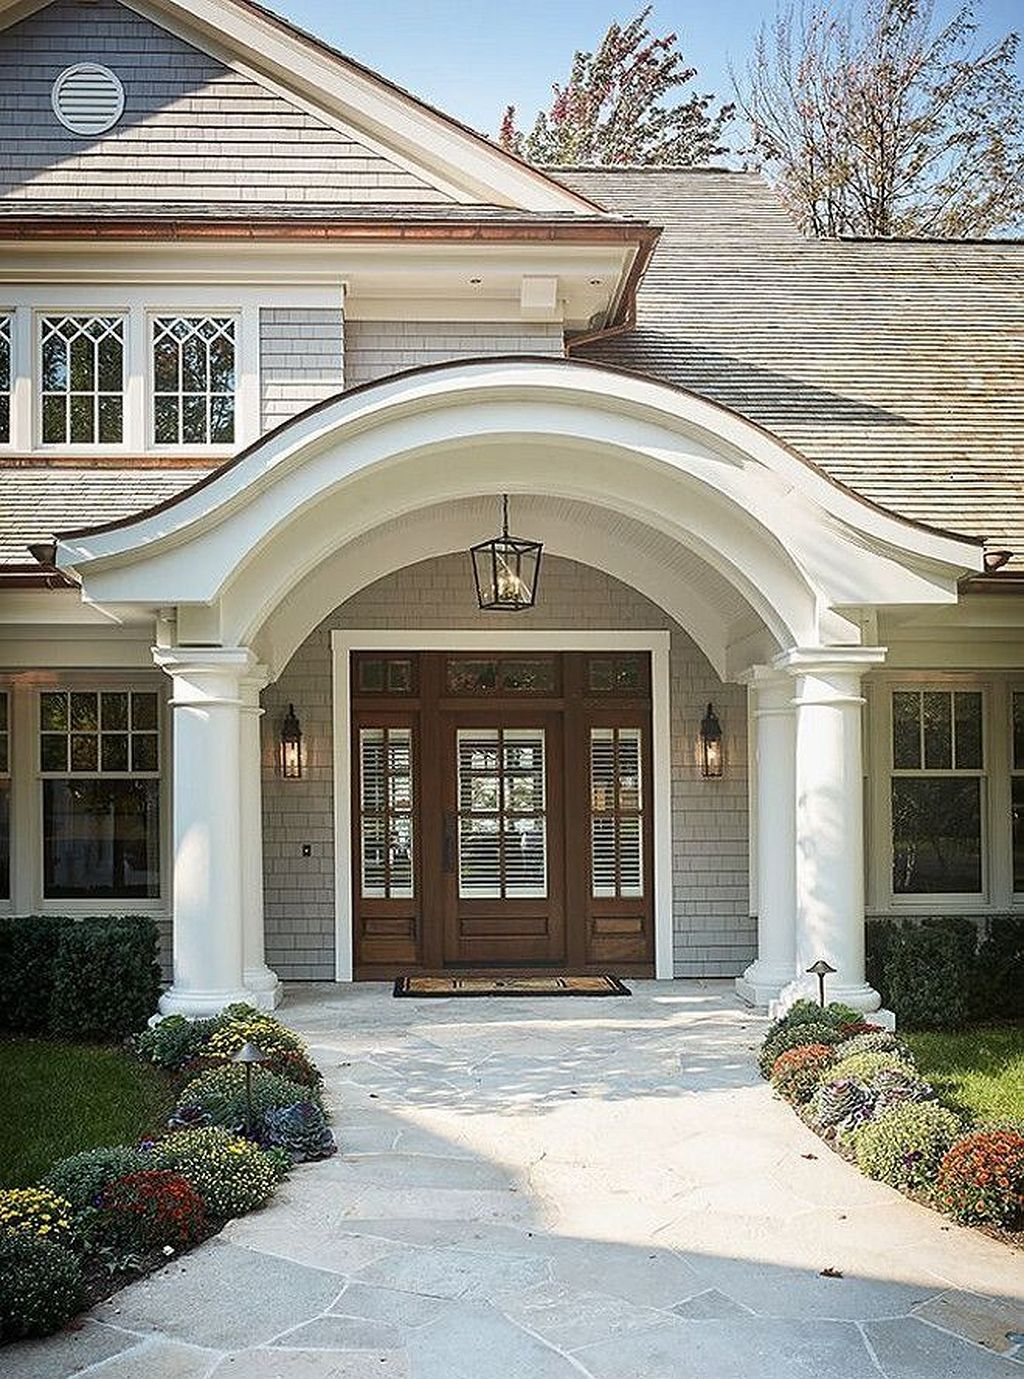 Home Exterior Design 5 Ideas 31 Pictures: 31 Easy And Affordable Ideas To Enhance The Curb Appeal